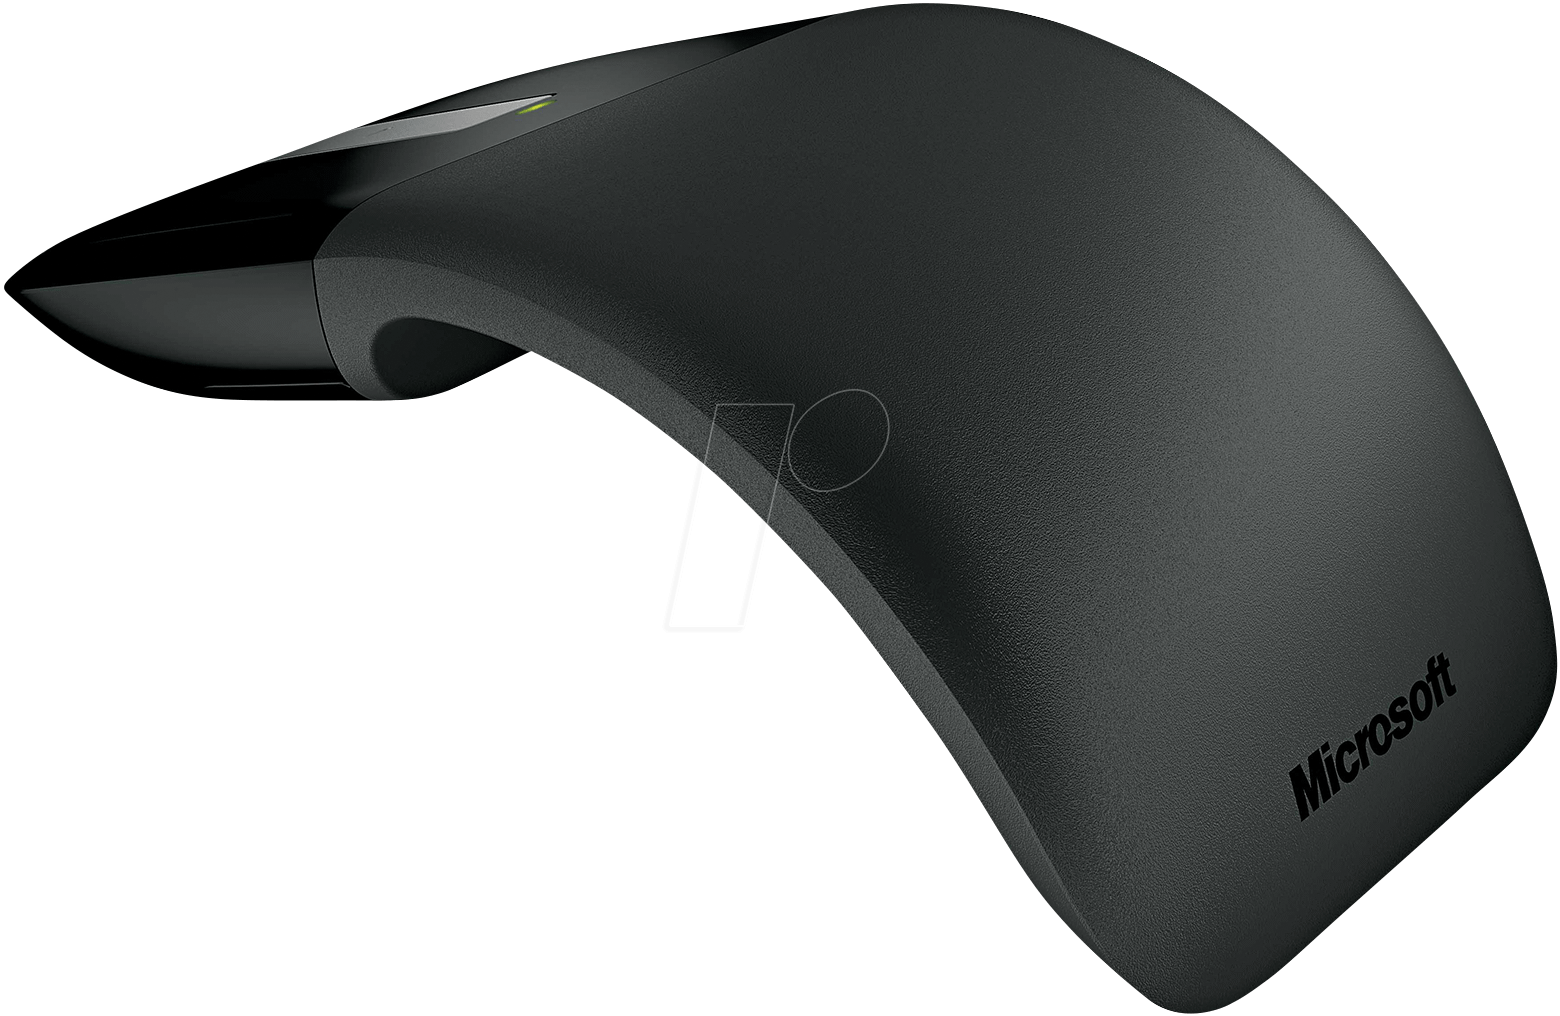 MS-ARC TM: Wireless Mouse BlueTrack Touch Folding Design